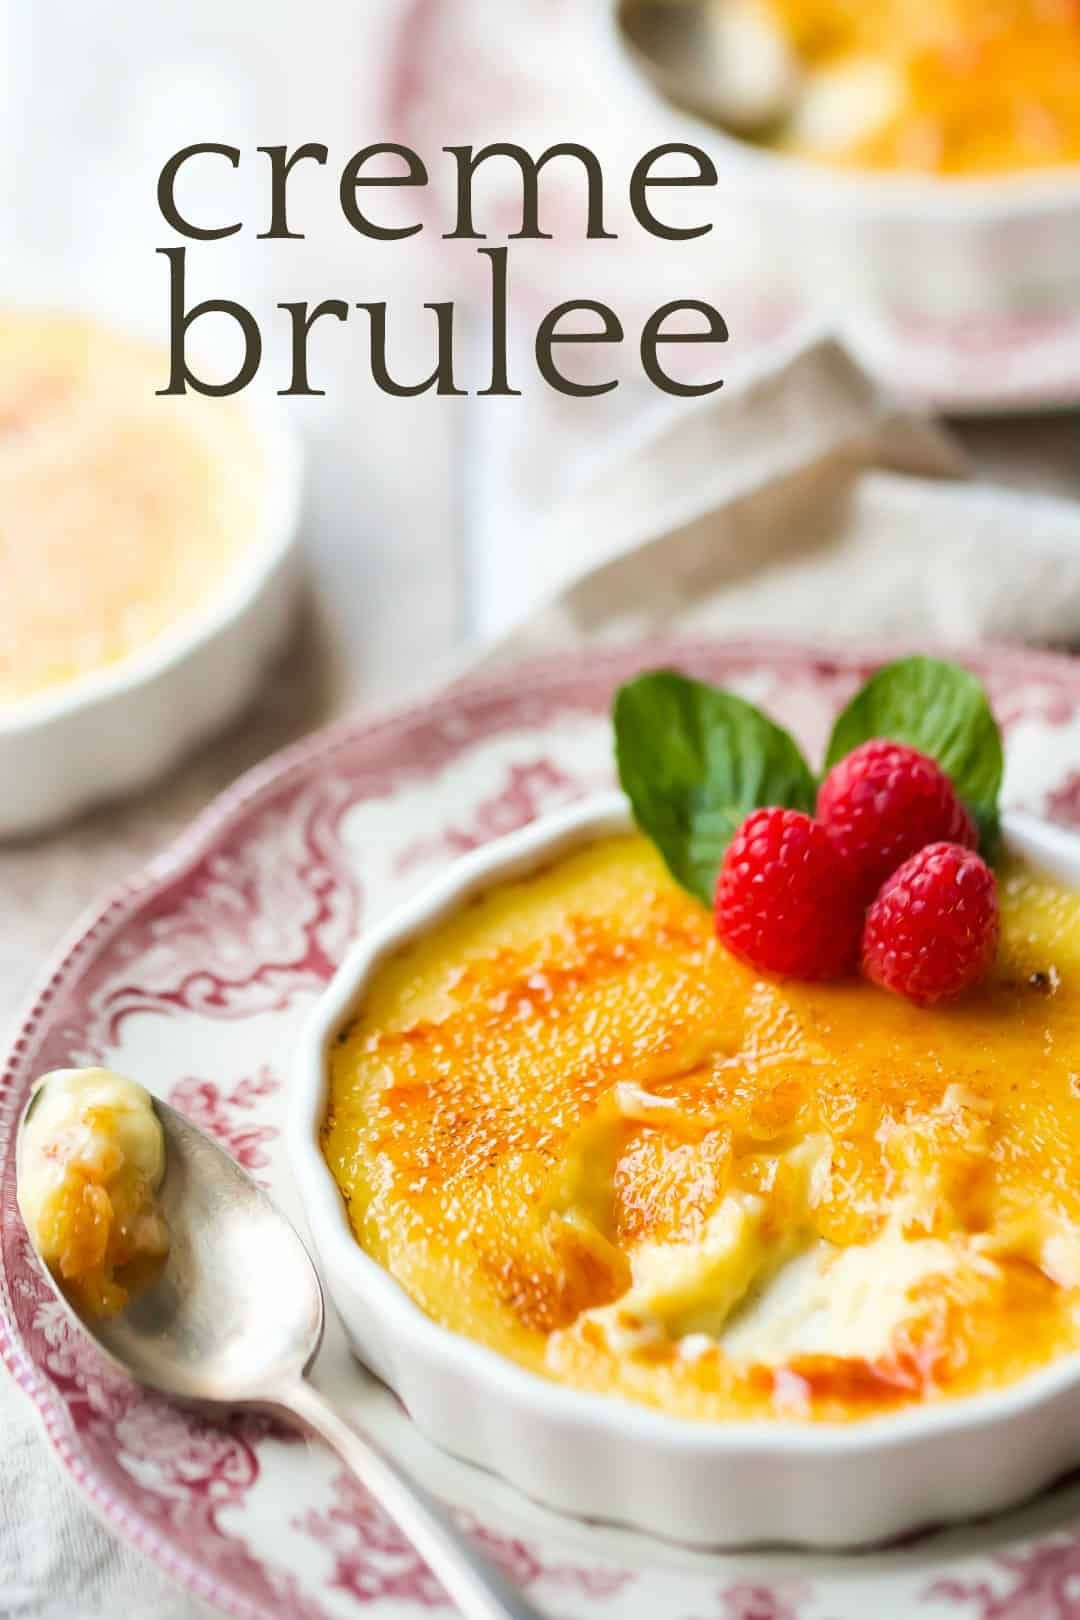 Creme brulee this recipe could not be more perfect silky